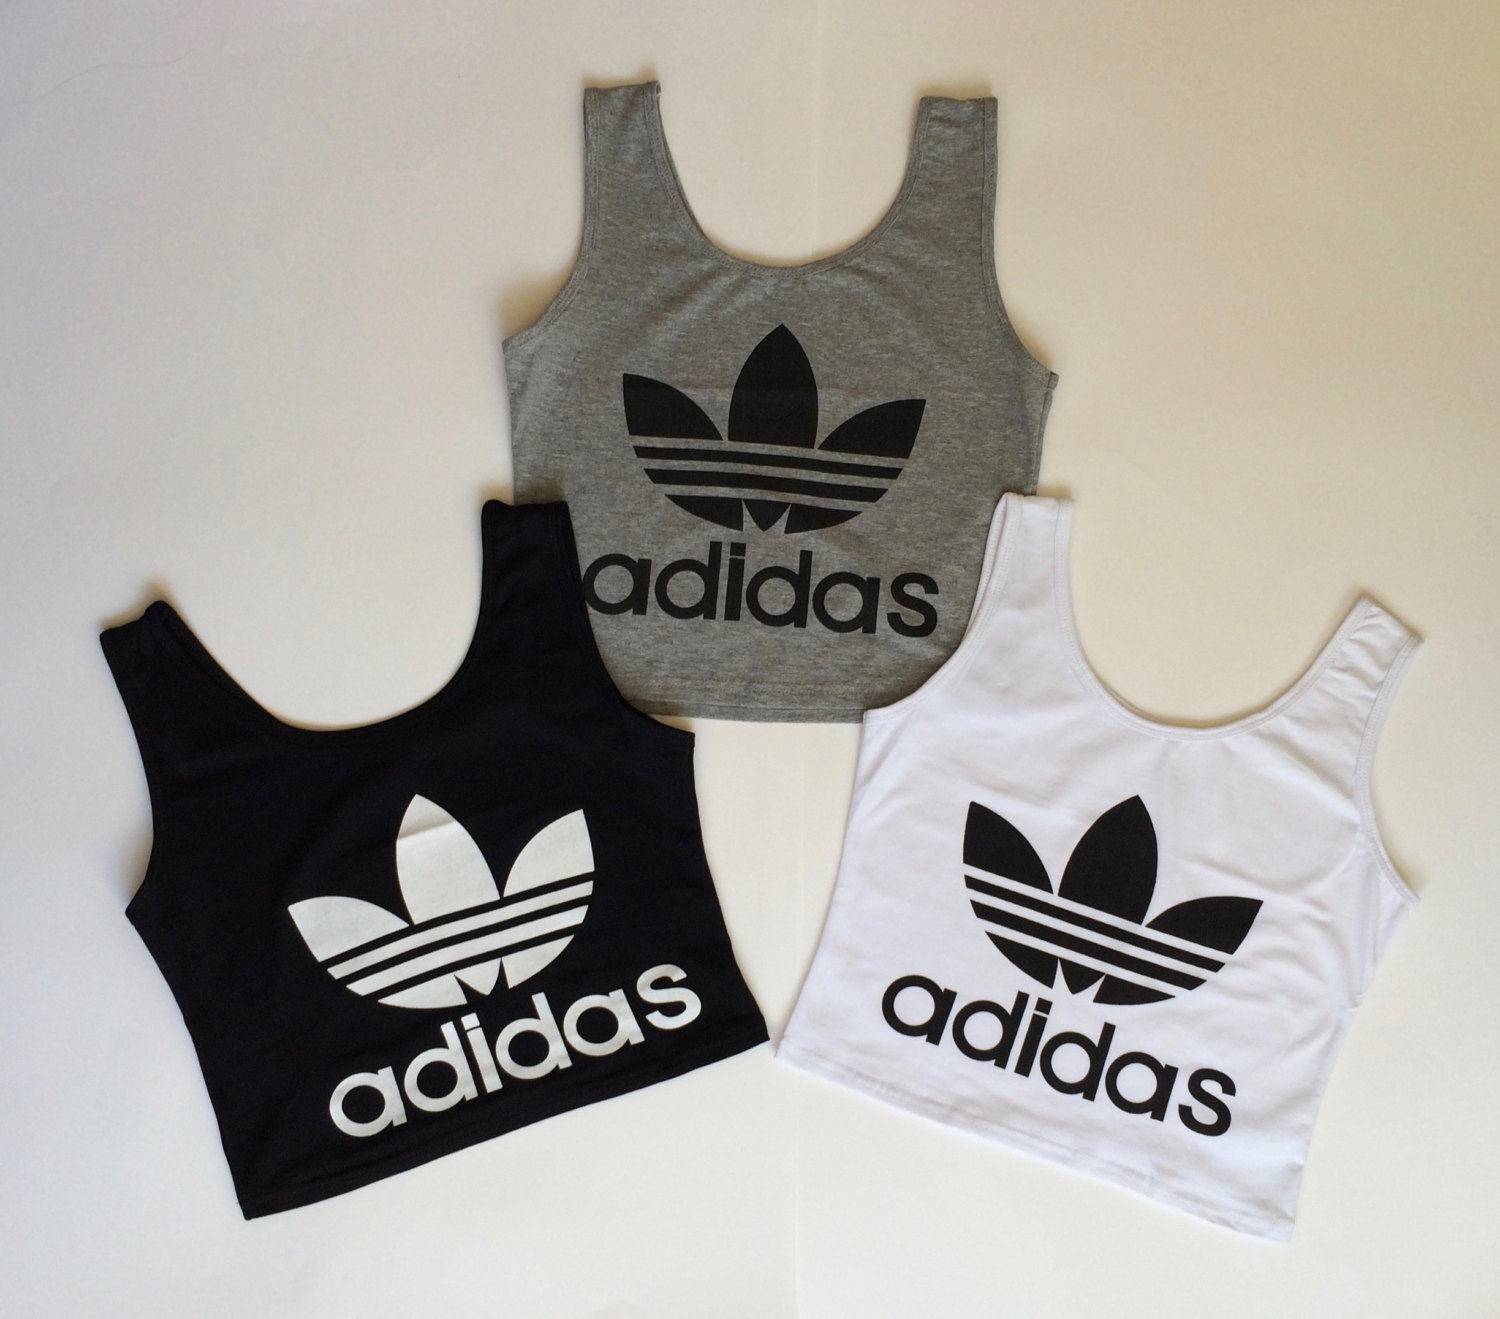 adidas reworked crop top vest cami tank halter neck camisole bra bikini festival boho bralette sports grey white black shorts co ord set